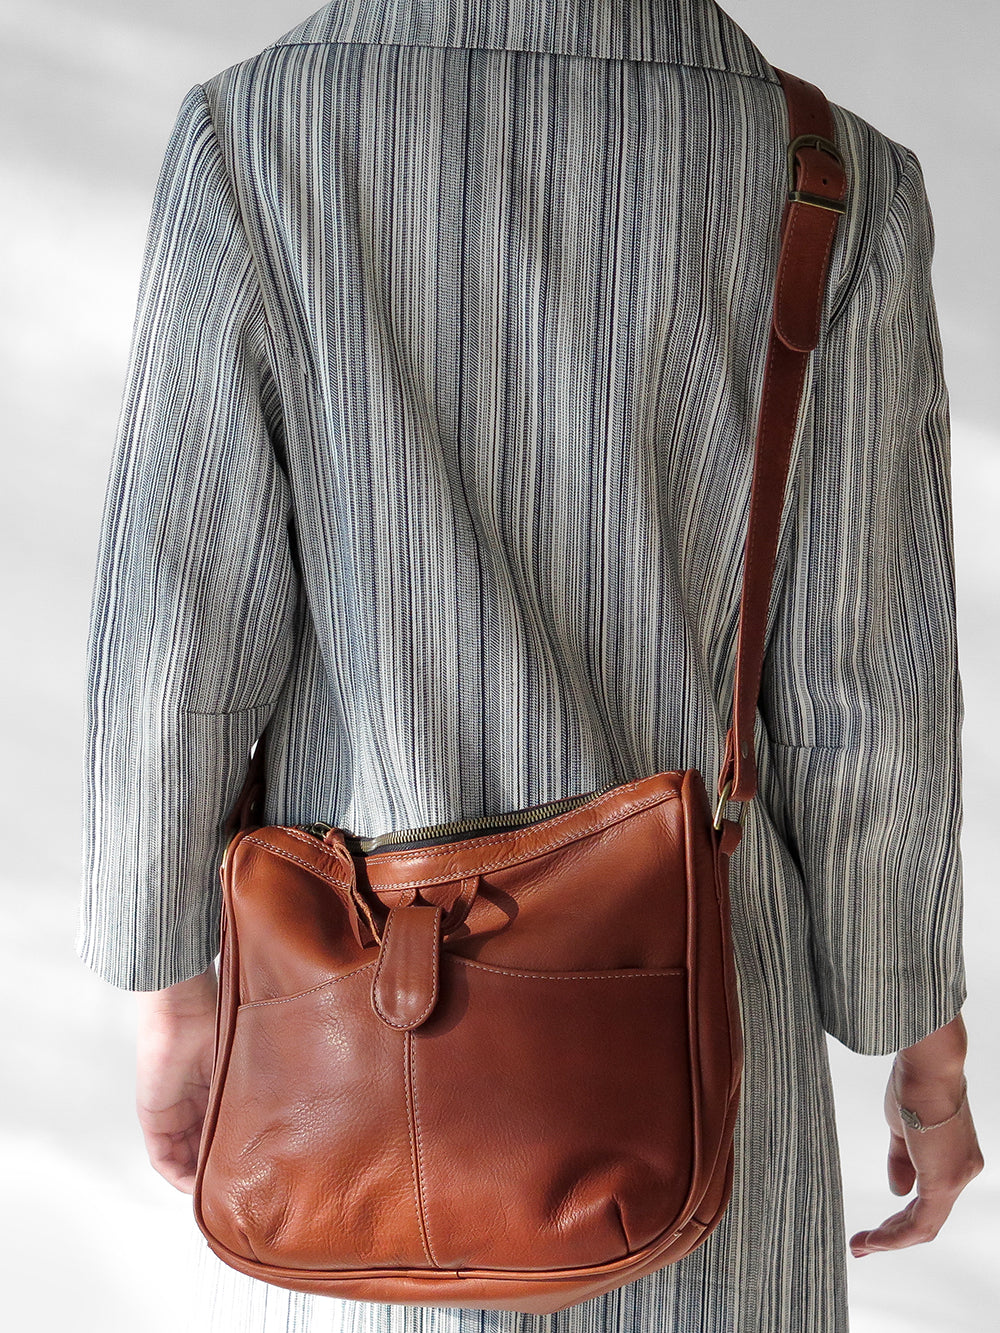 leather shoulder bag in whiskey